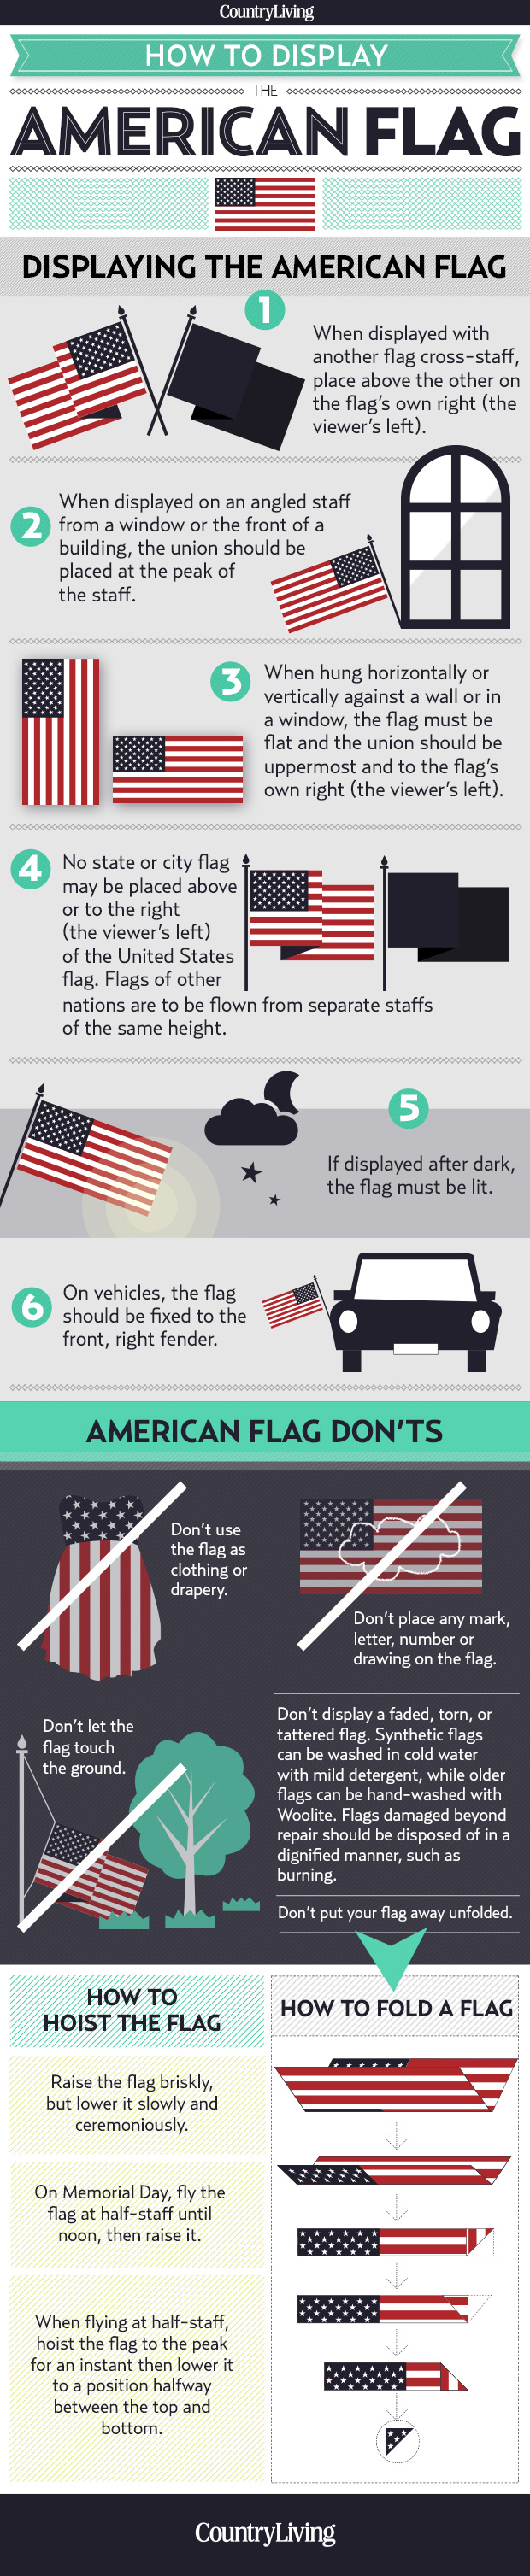 4th of july psa how to display the american flag for Proper us flag display